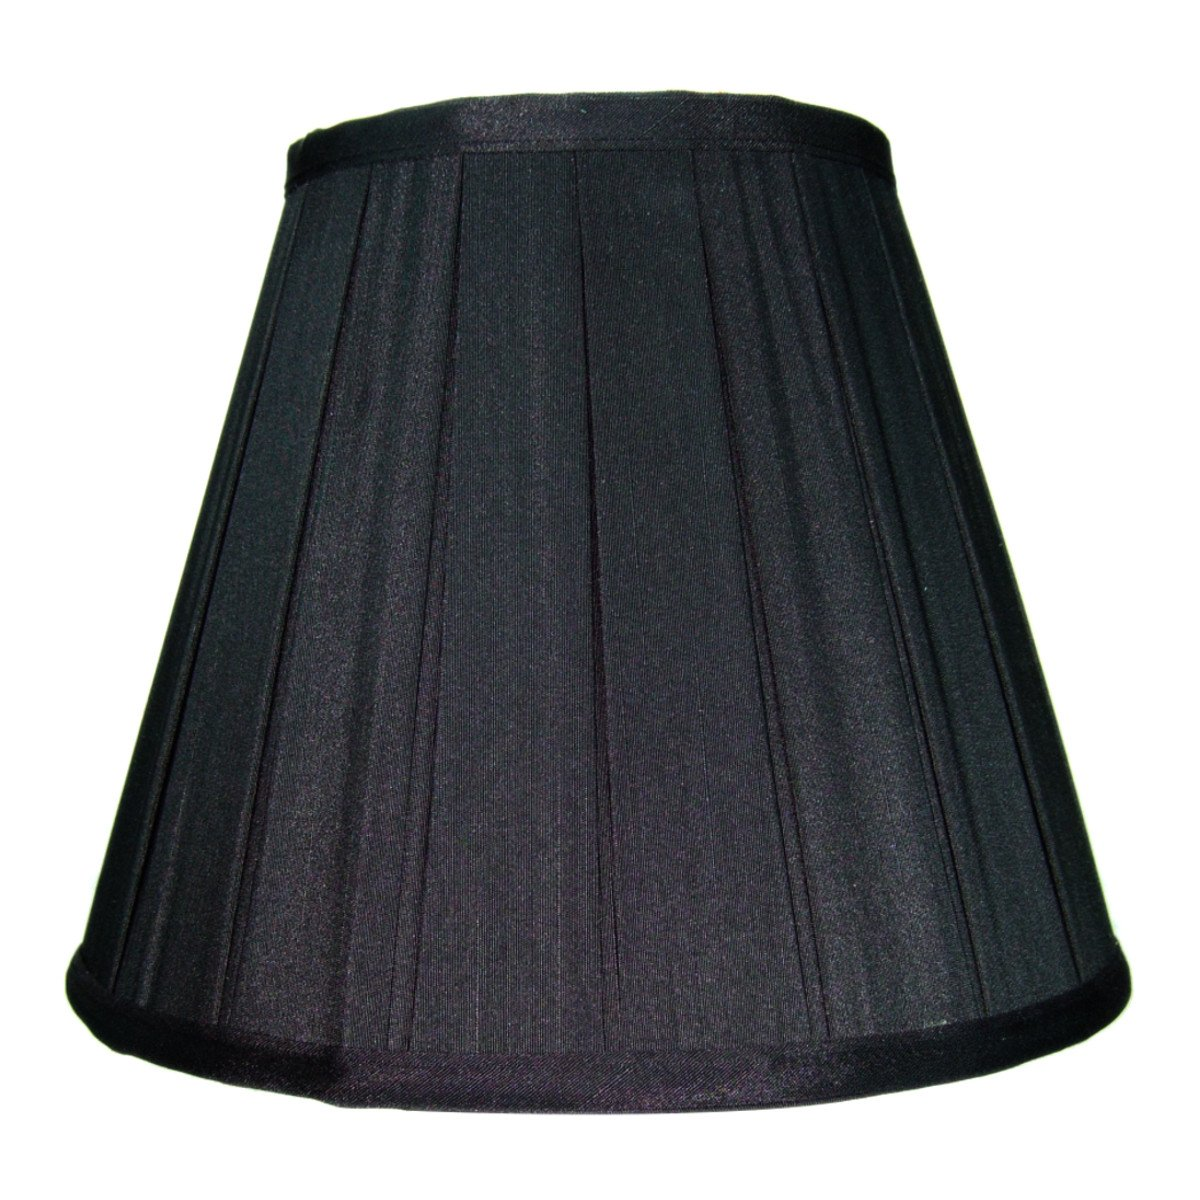 5x10x8 Empire Box Pleat Black Shantung Fabric Lampshade with Gold Liner By Home Concept - Perfect for small table lamps, desk lamps, and accent lights -Medium, Black